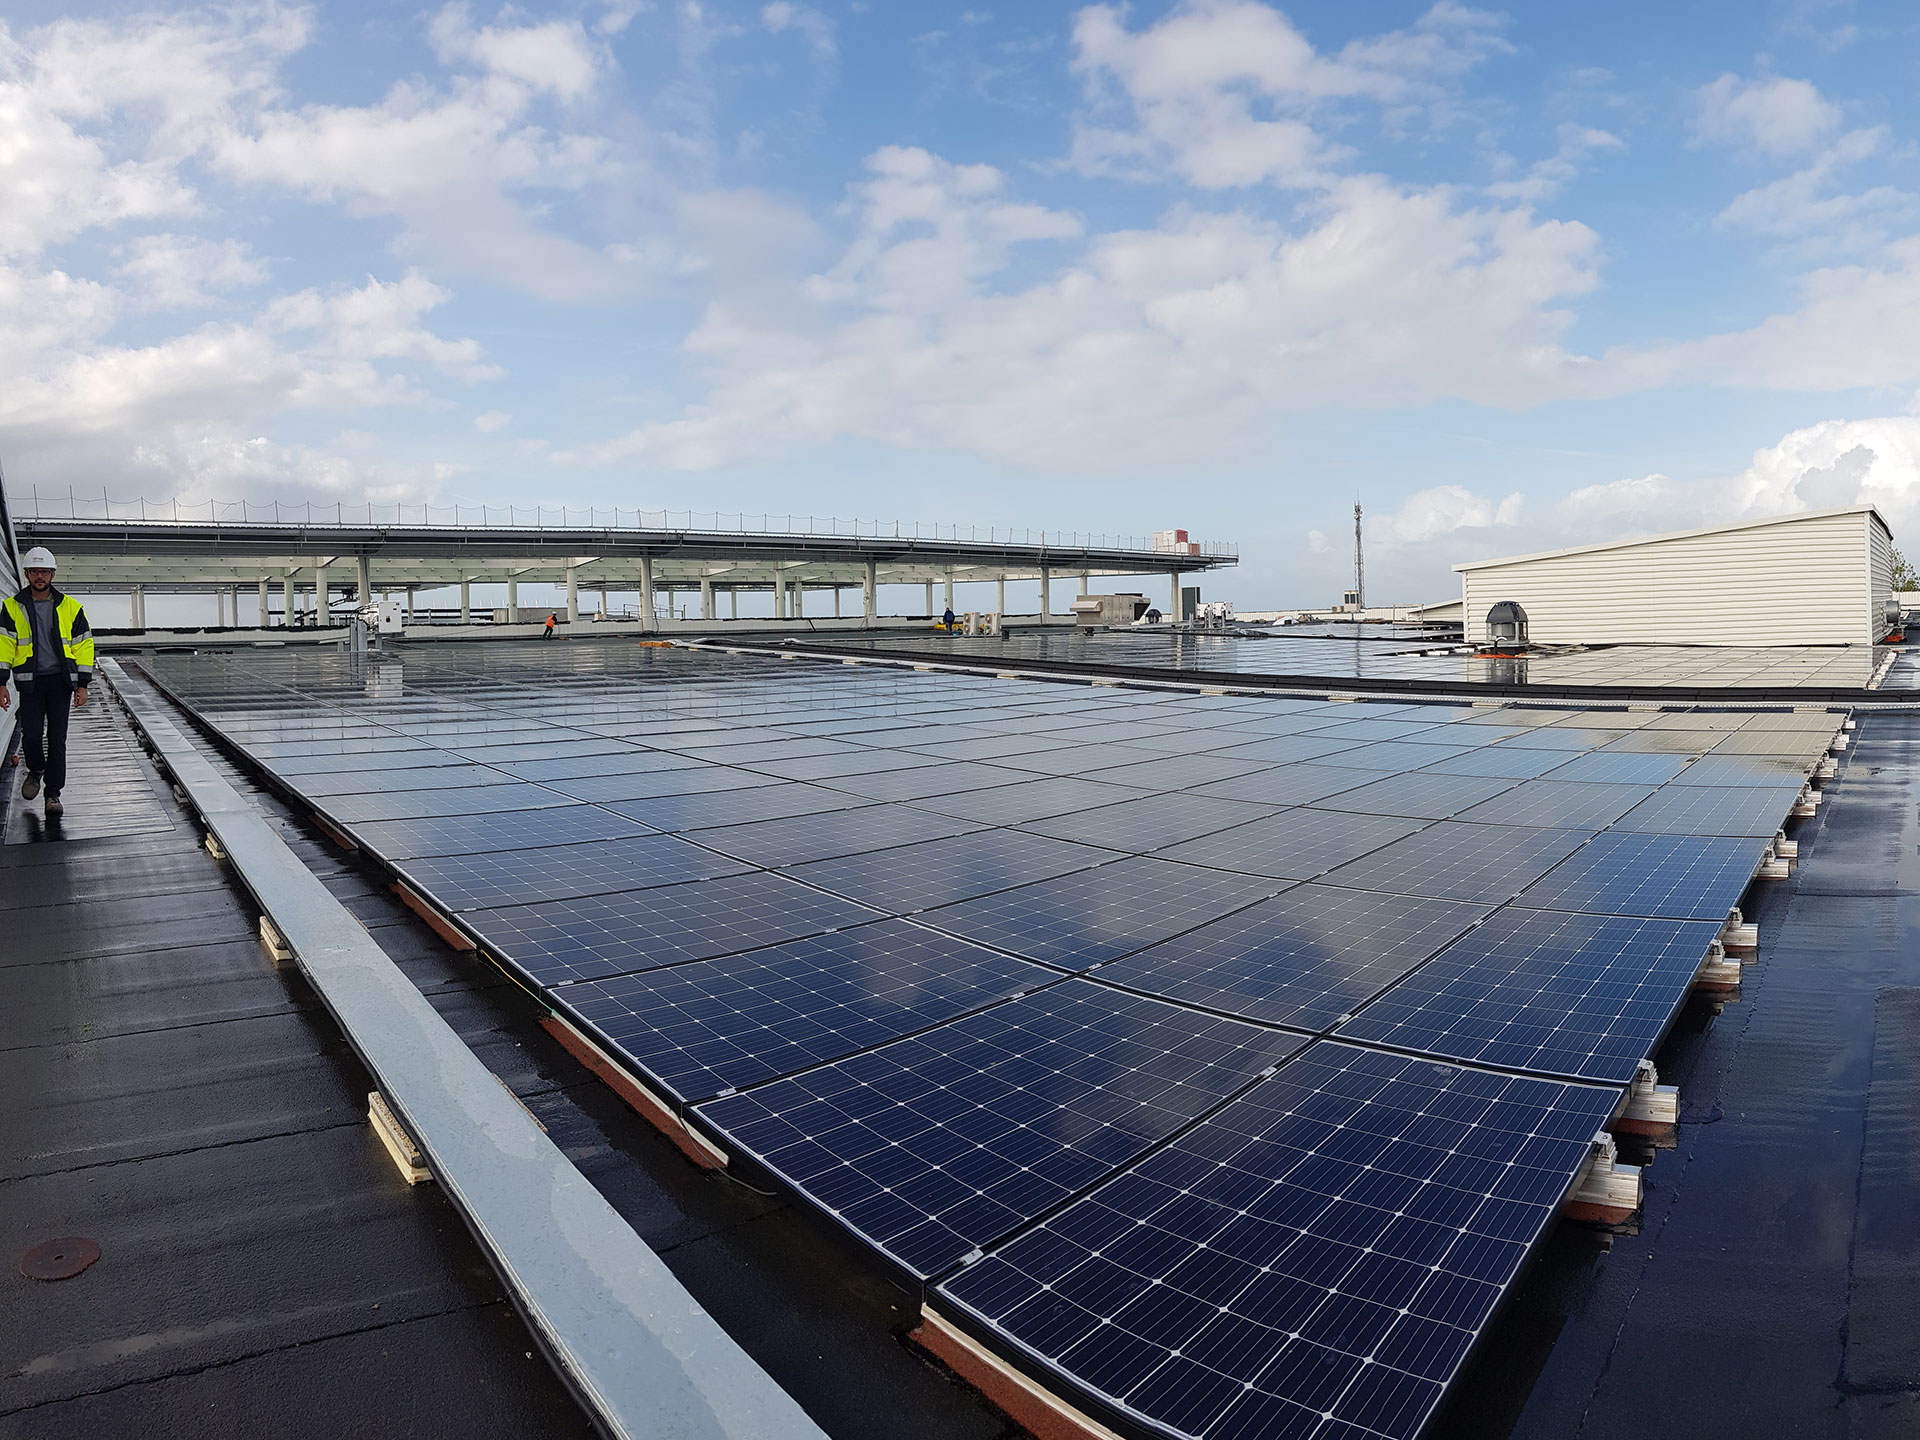 Photovoltaic-modules-bitumen-flat-roof-shopping center